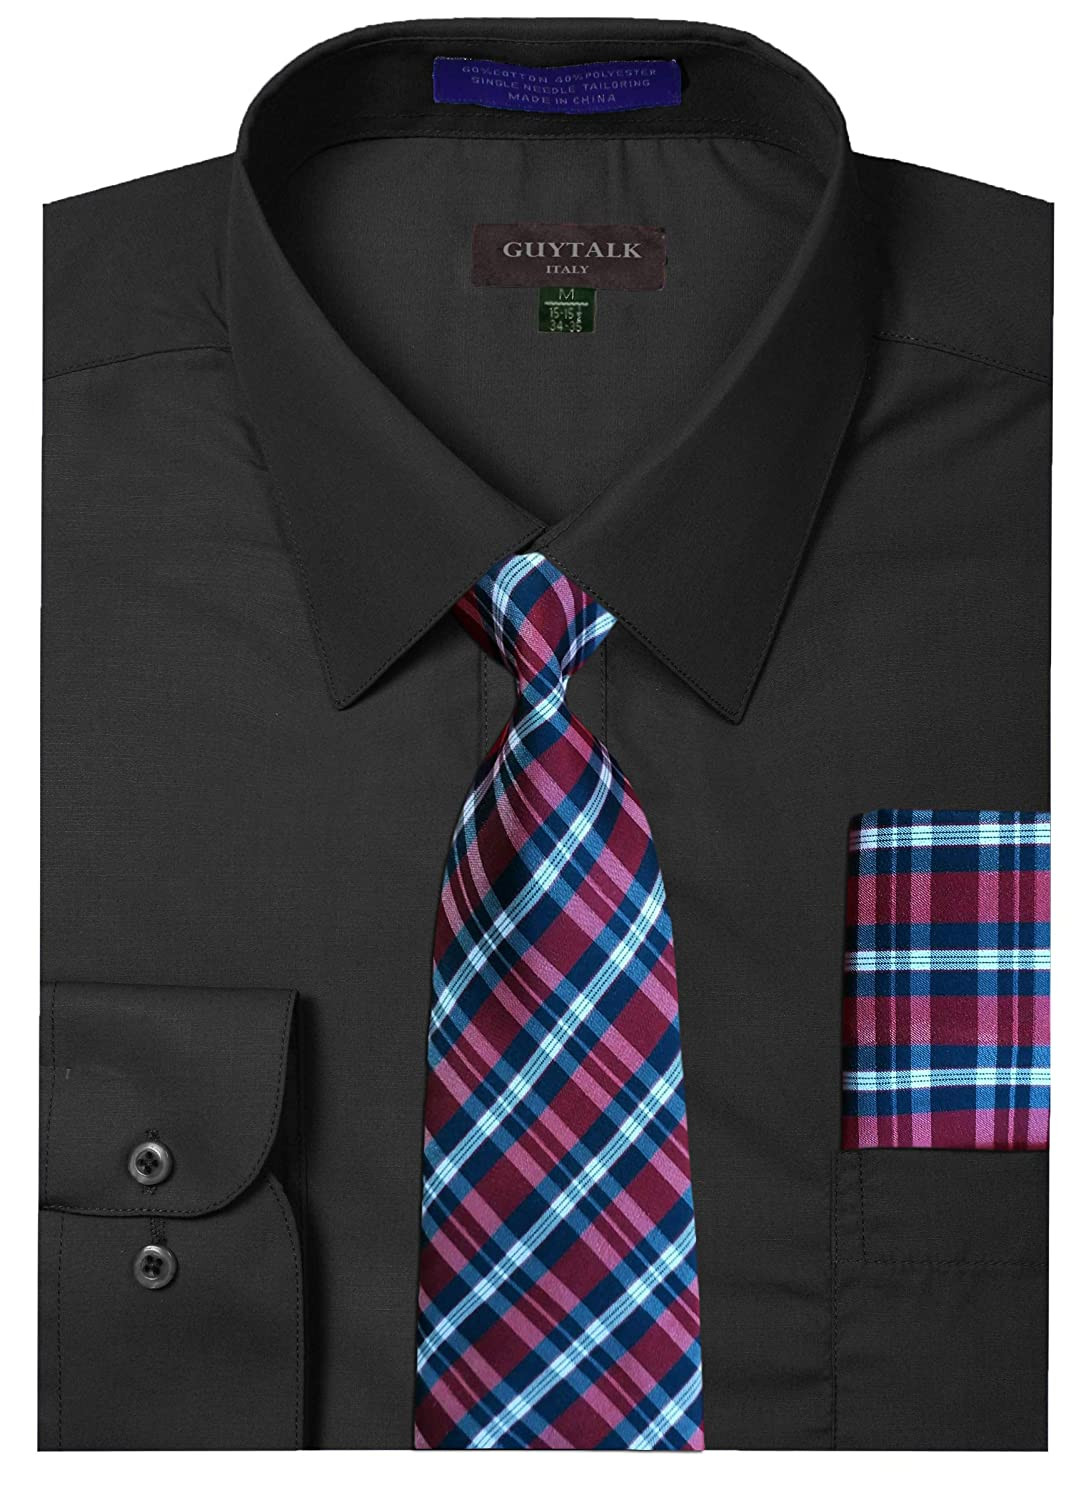 9056677733ba Guytalk Mens Dress Shirt With Matching Tie And Handkerchief: Amazon.ca:  Clothing & Accessories